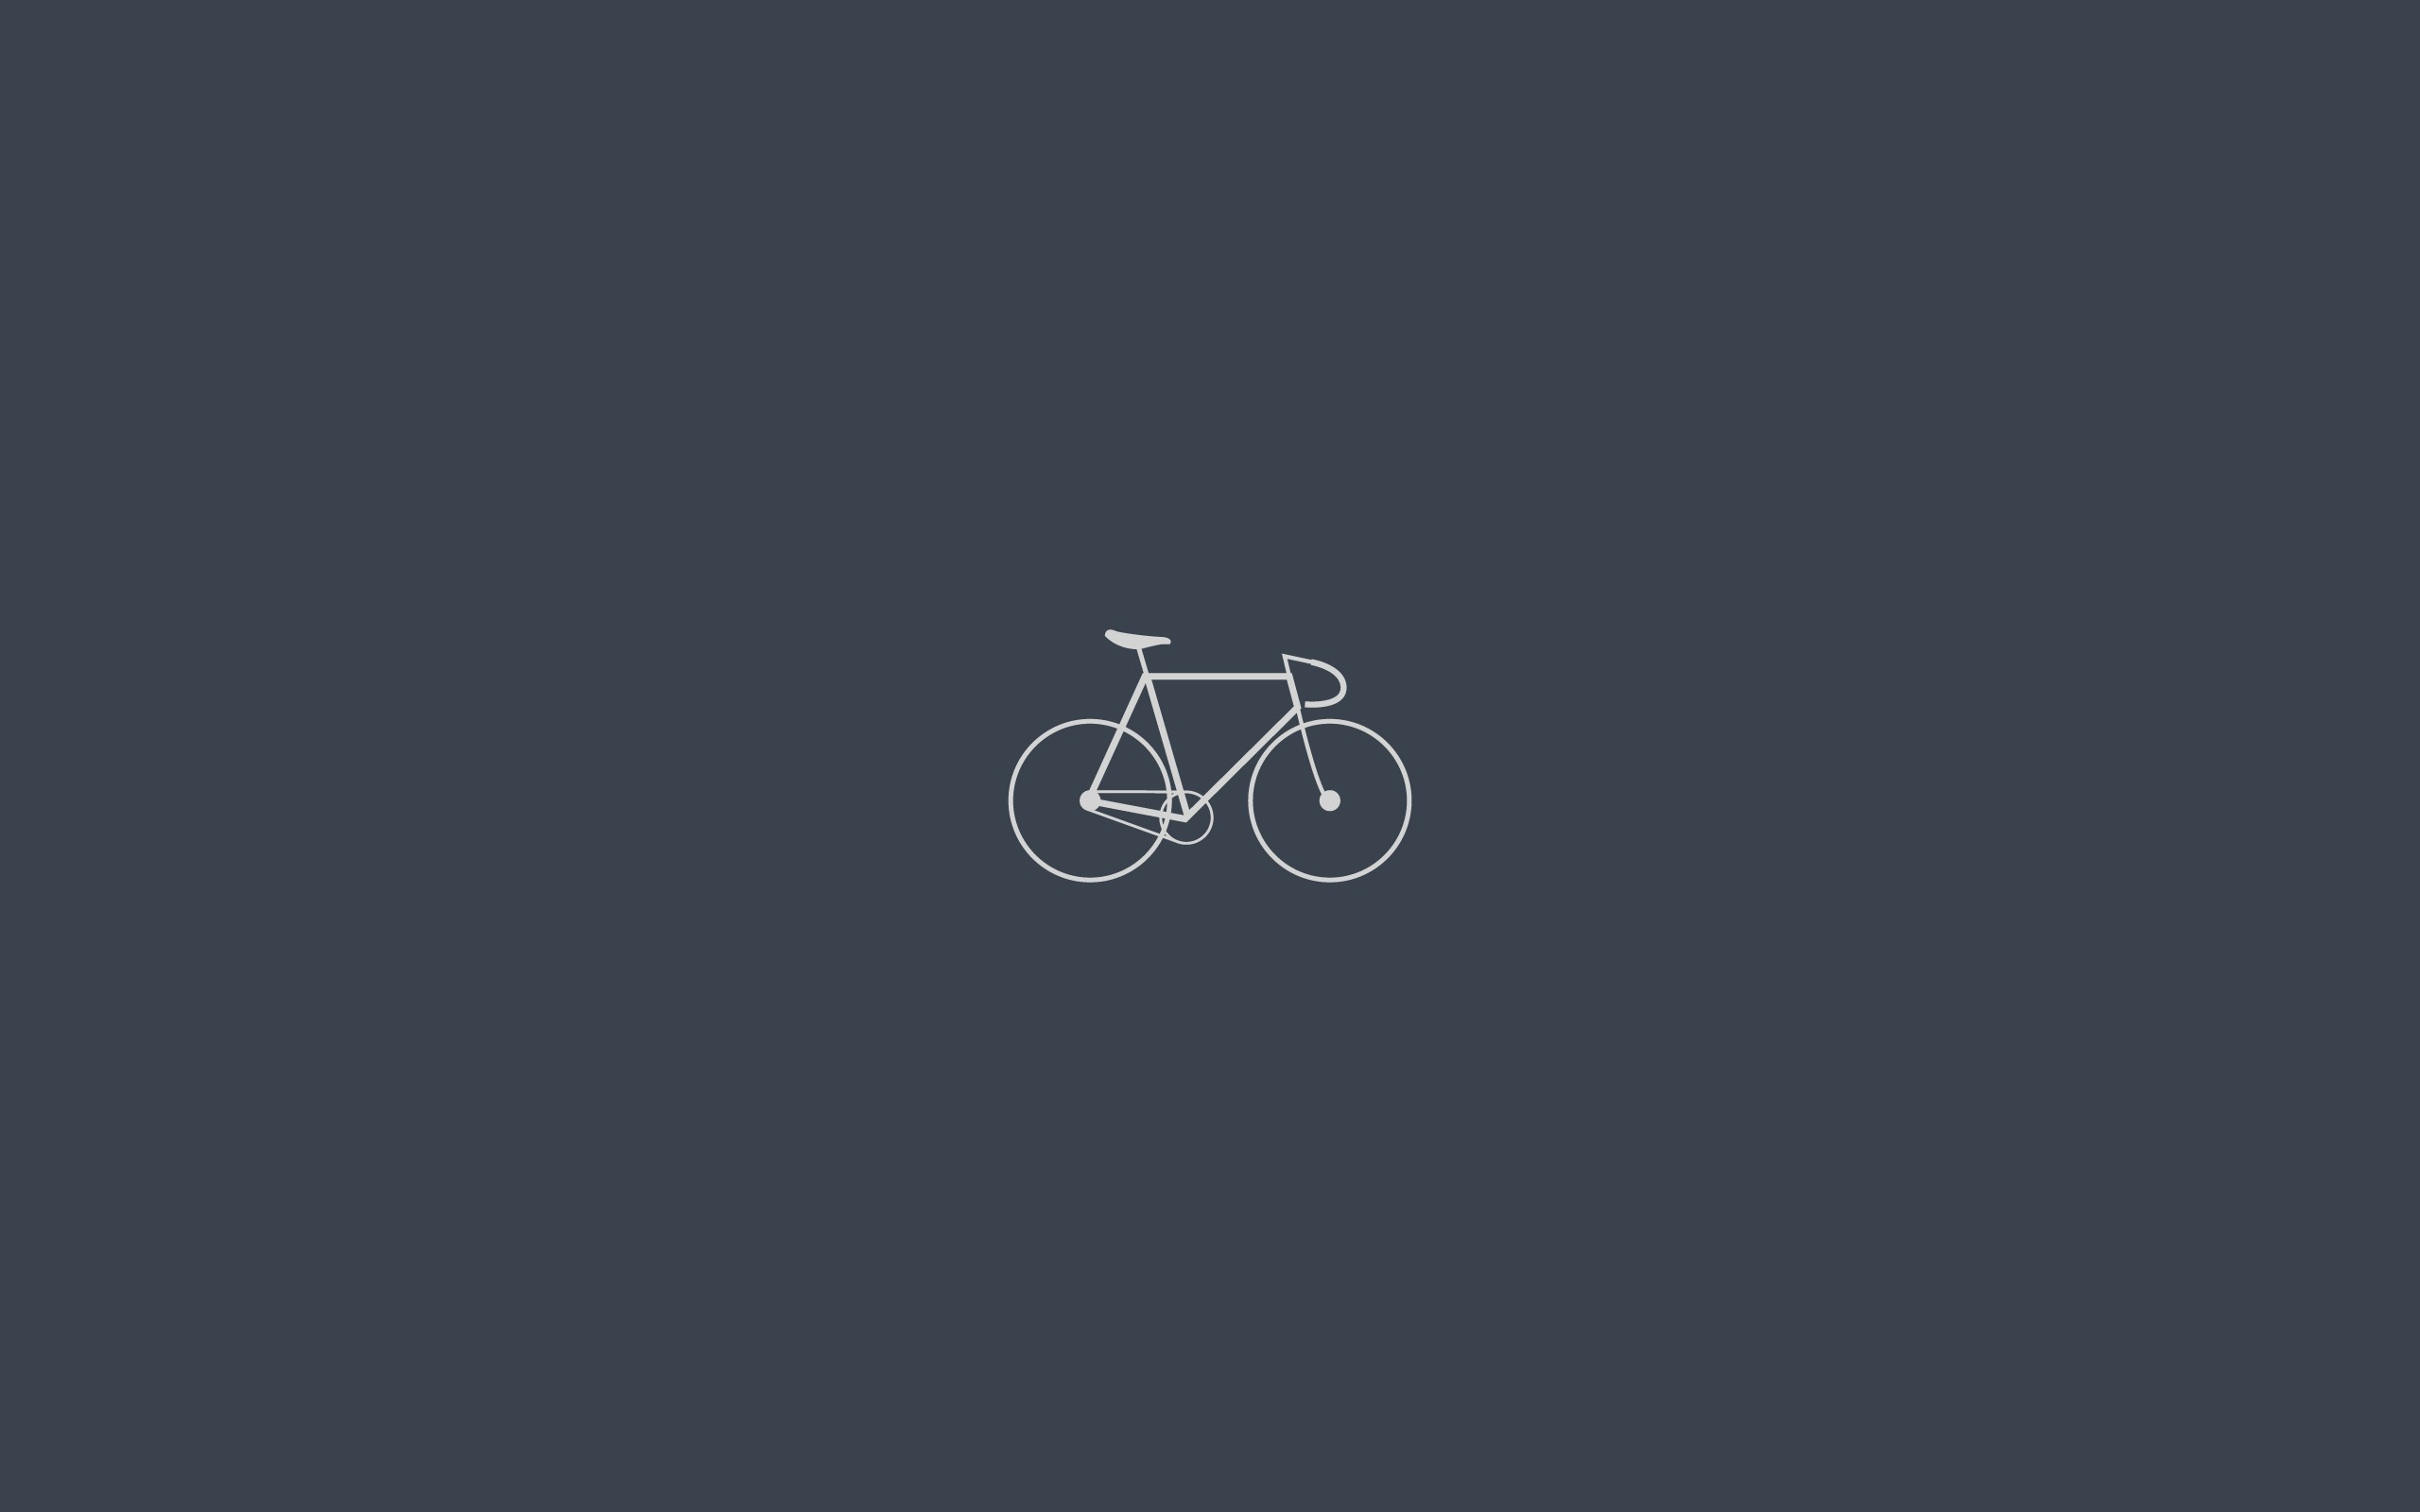 Fixed Gear Wallpaper Iphone Artwork Bicycles Minimalistic Simple Wallpaper